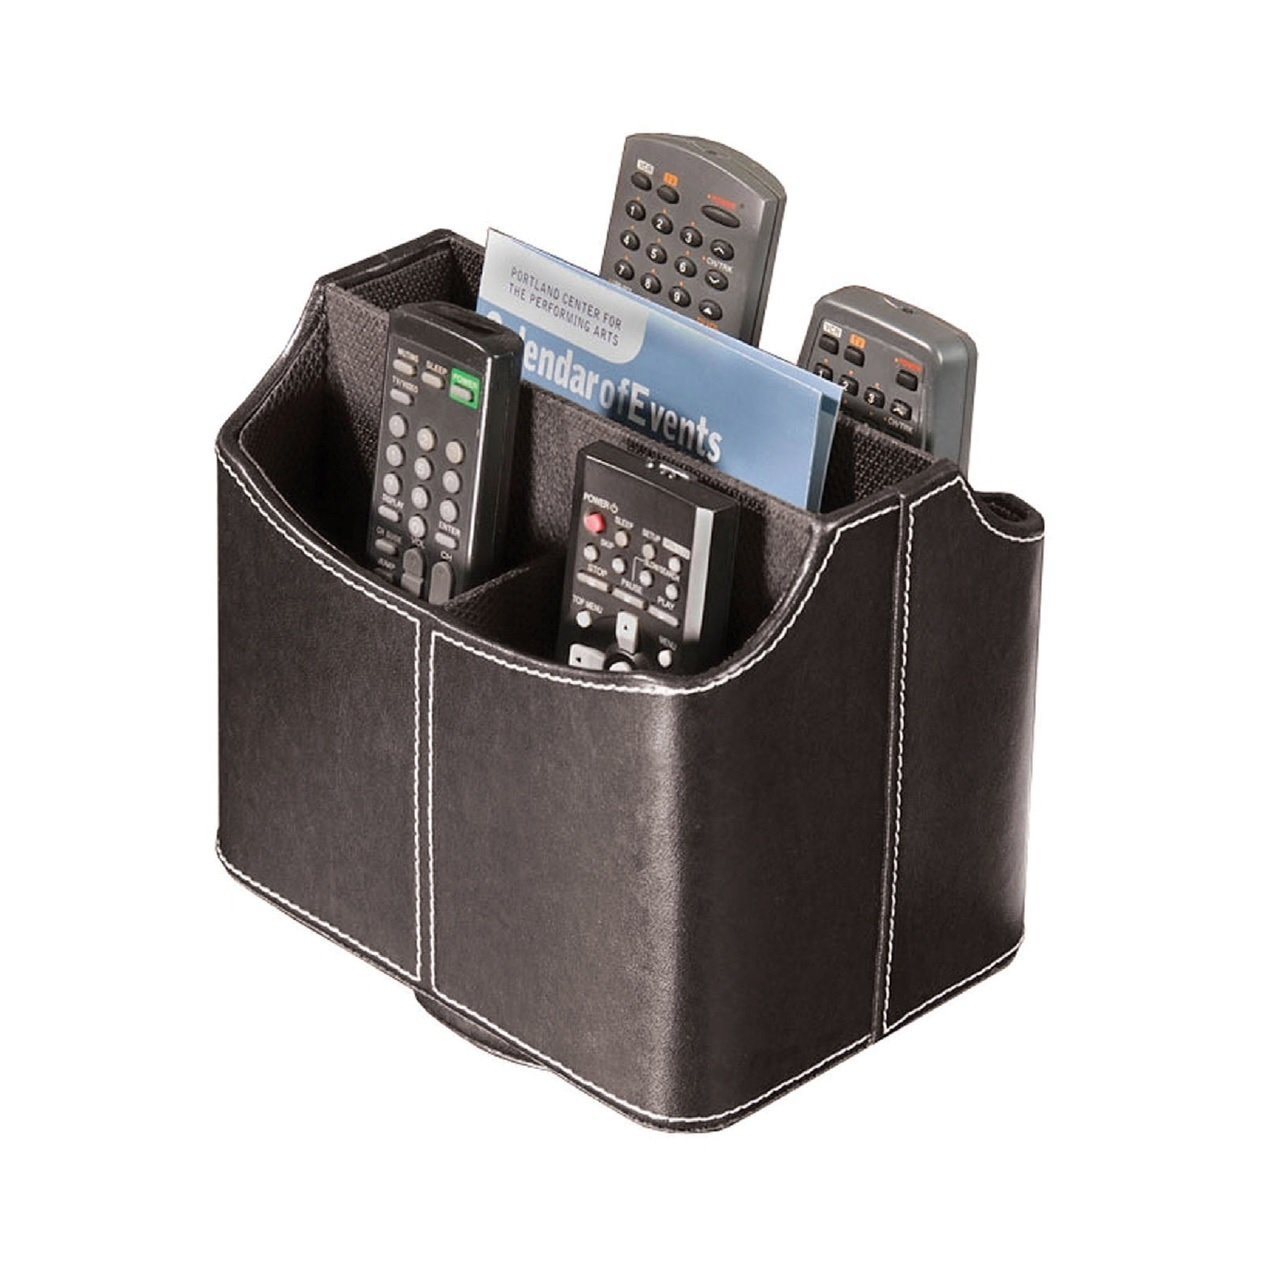 Spinning Media Storage Faux Leather Remote Control